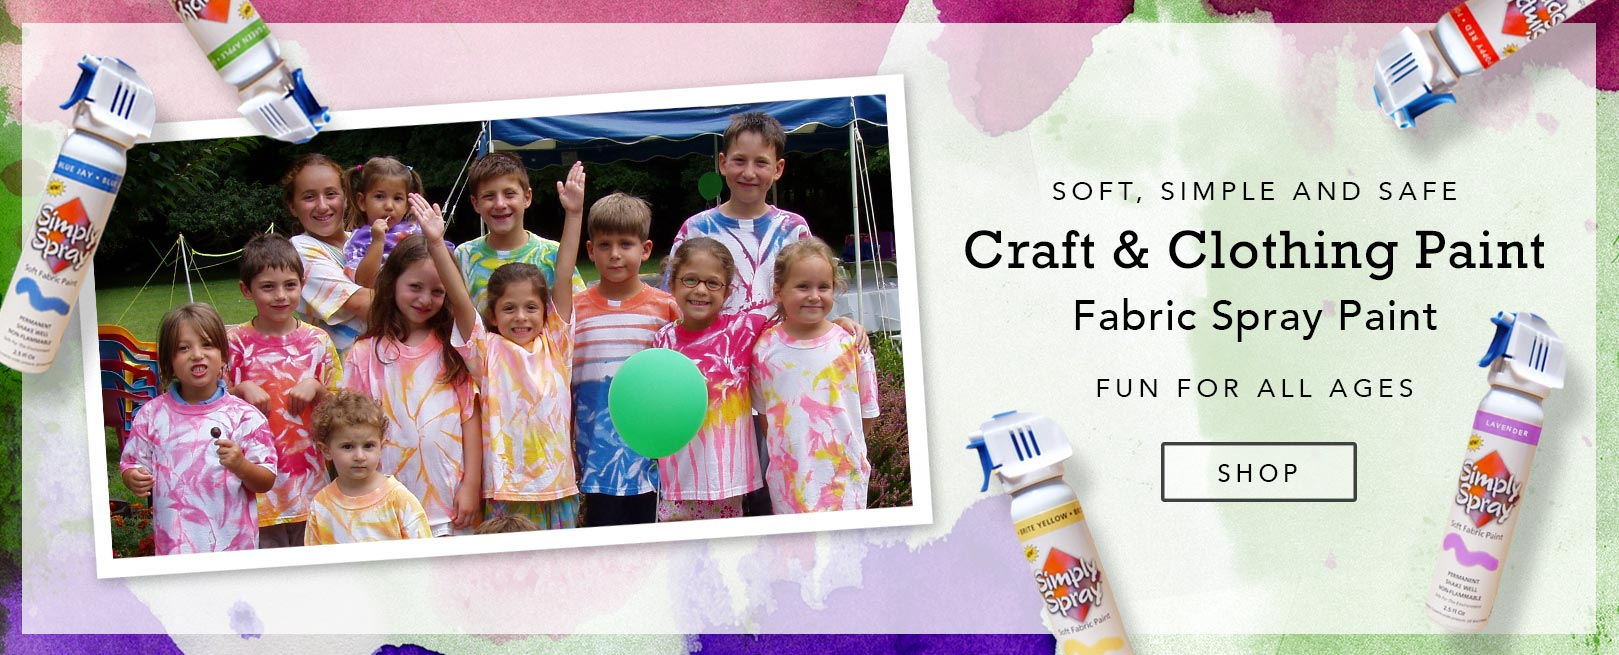 Craft and Clothing Fabric Spray Paint